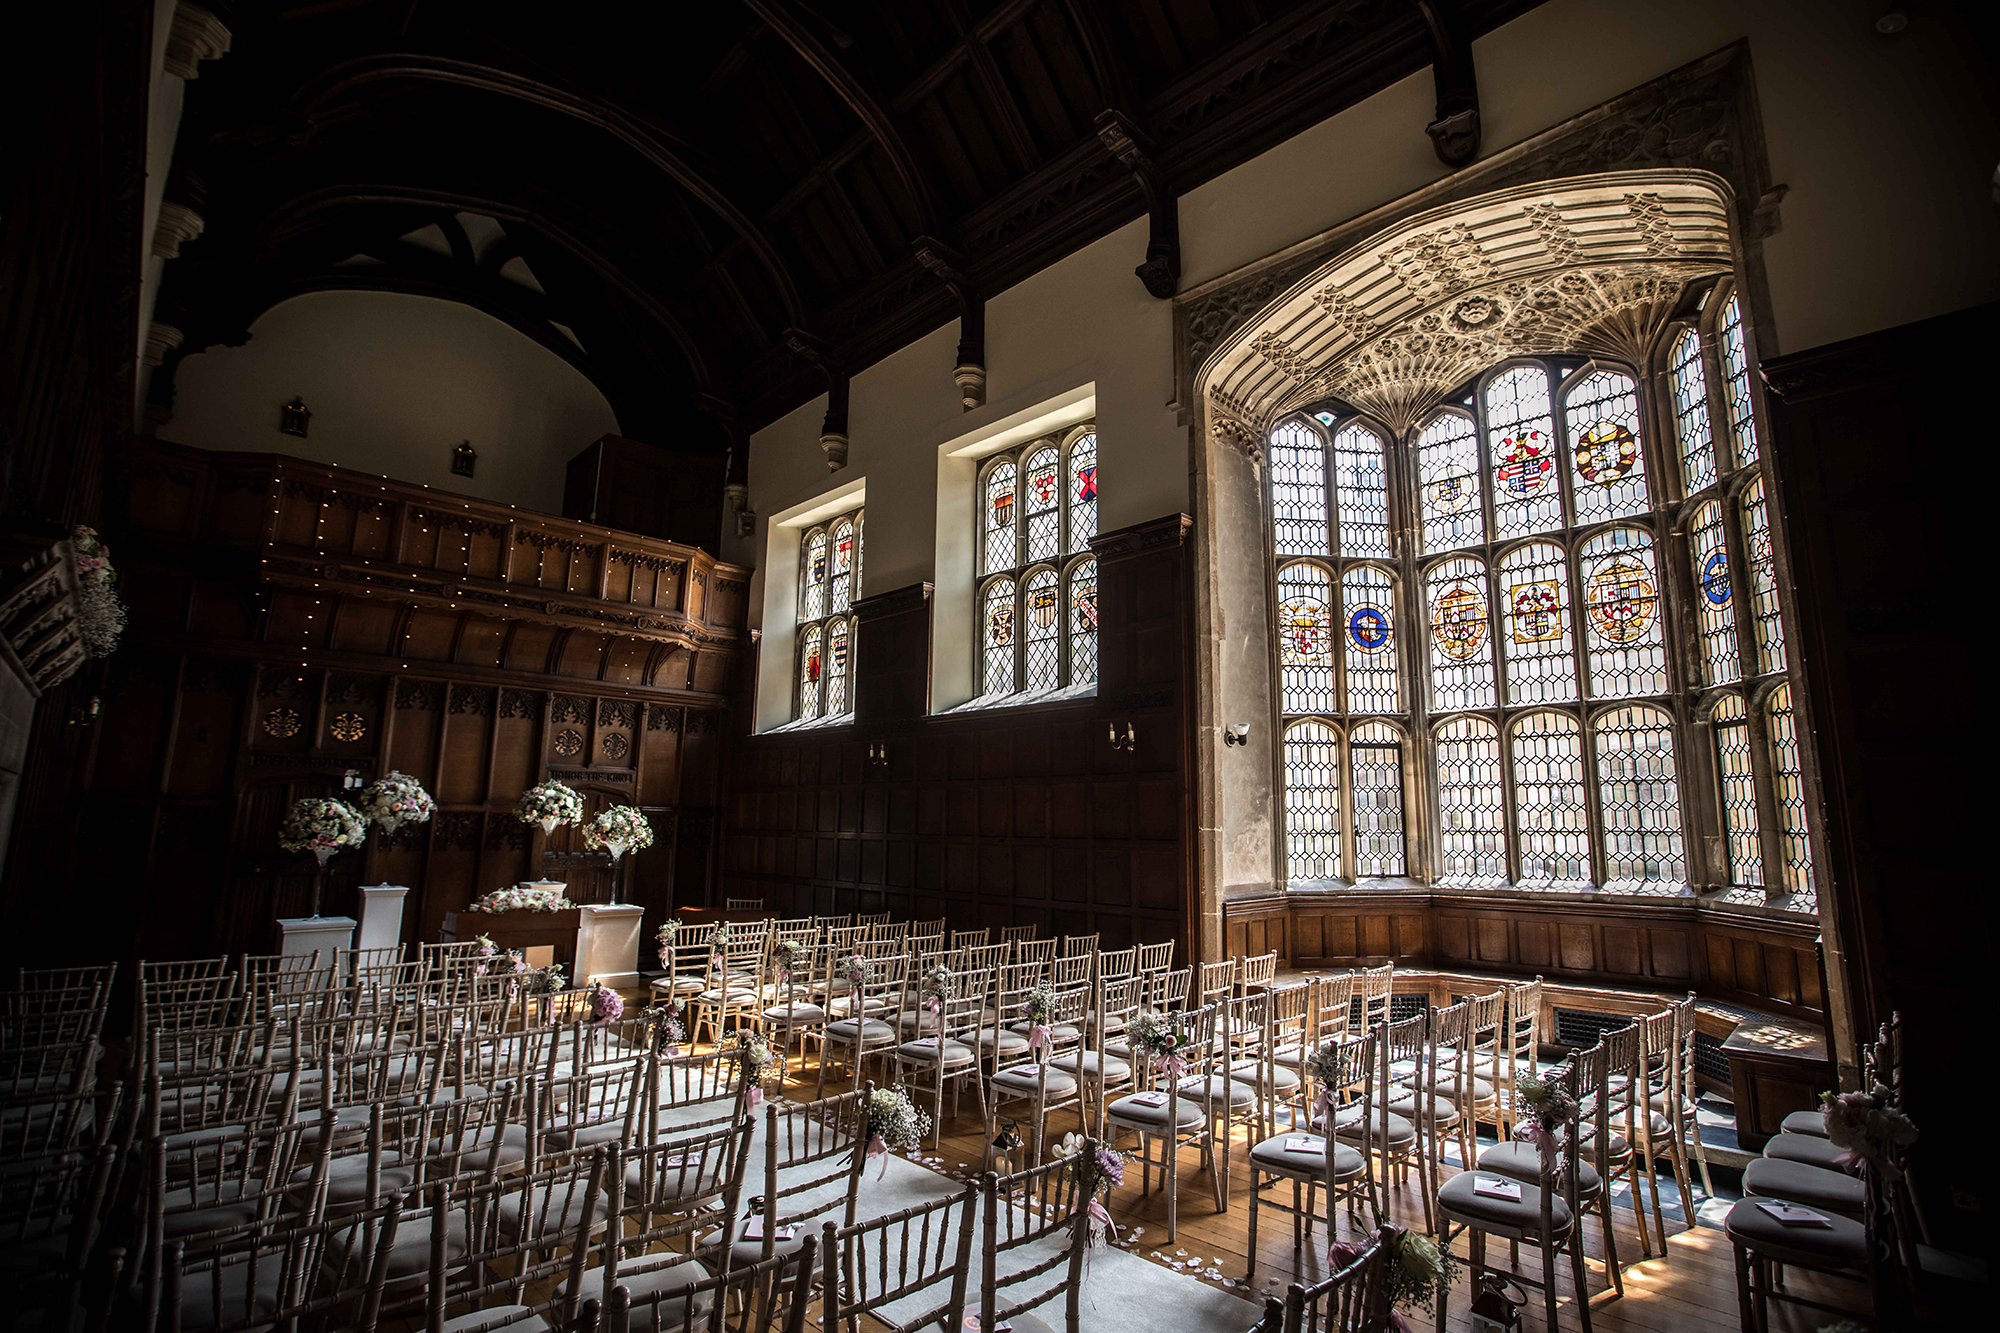 Interior of the Tudor hall, with beautiful imposing, stained glass windows, prepared for the wedding service at Hengrave Hall